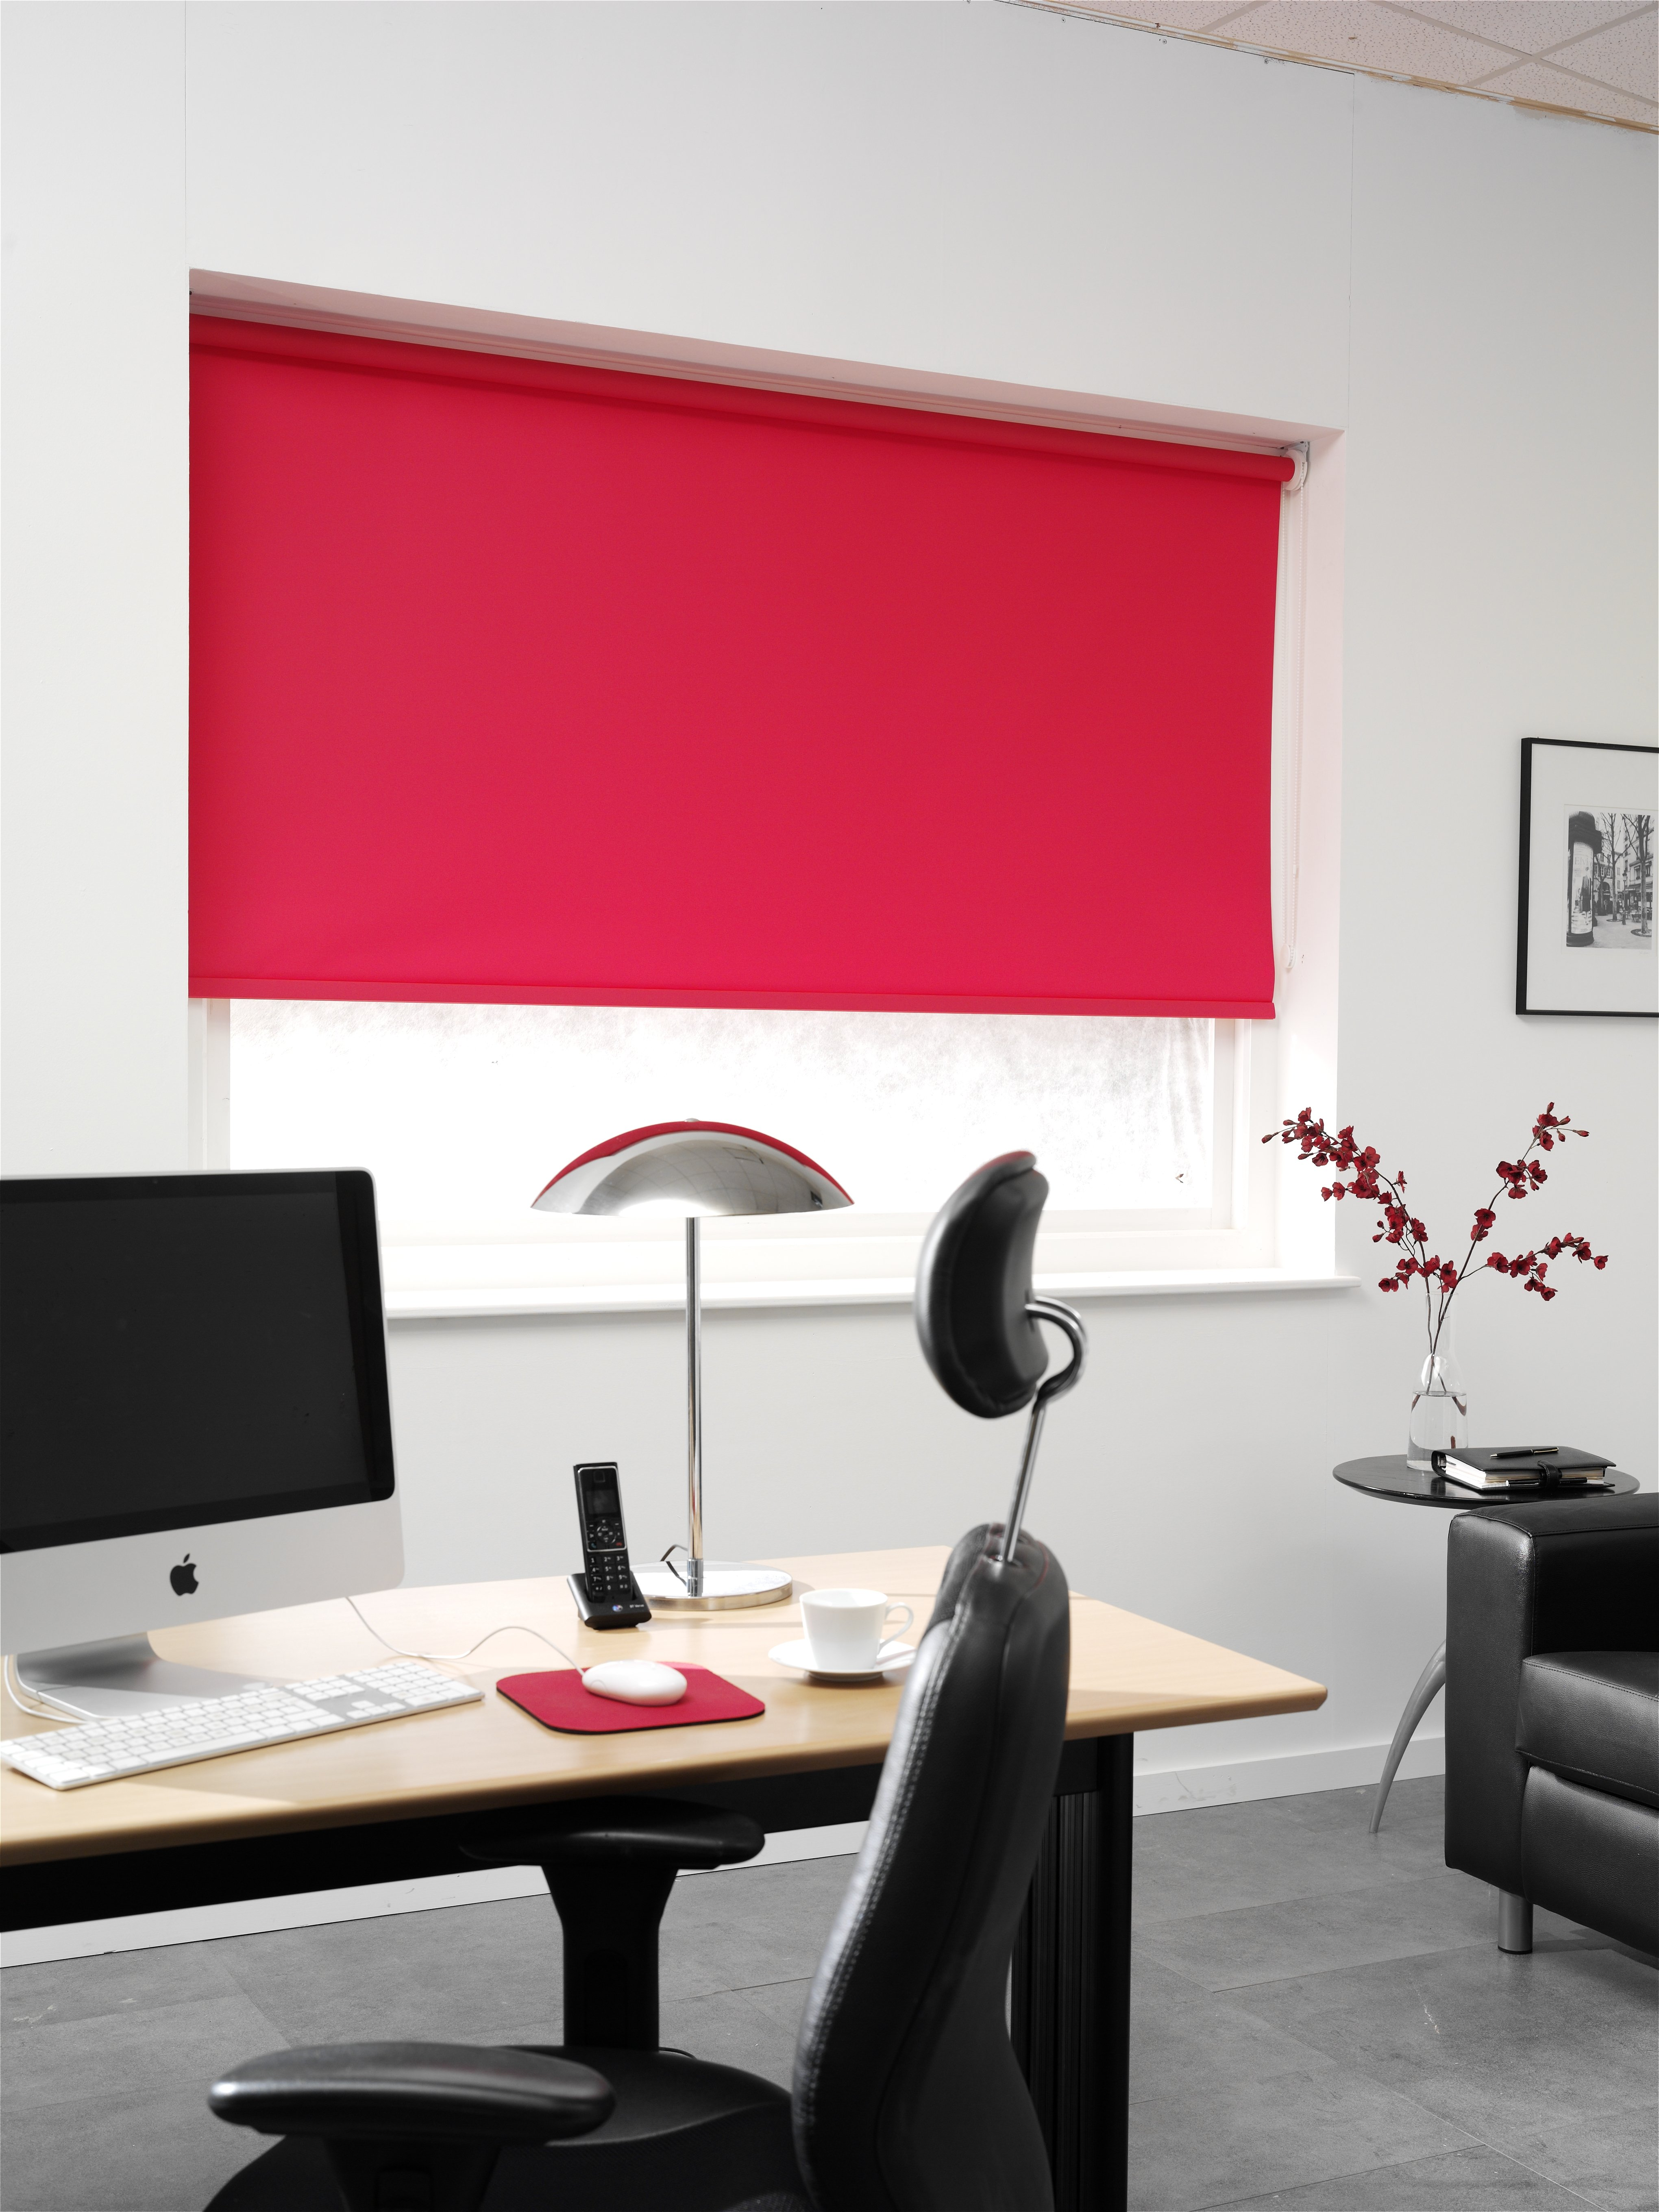 A bright red roller blind